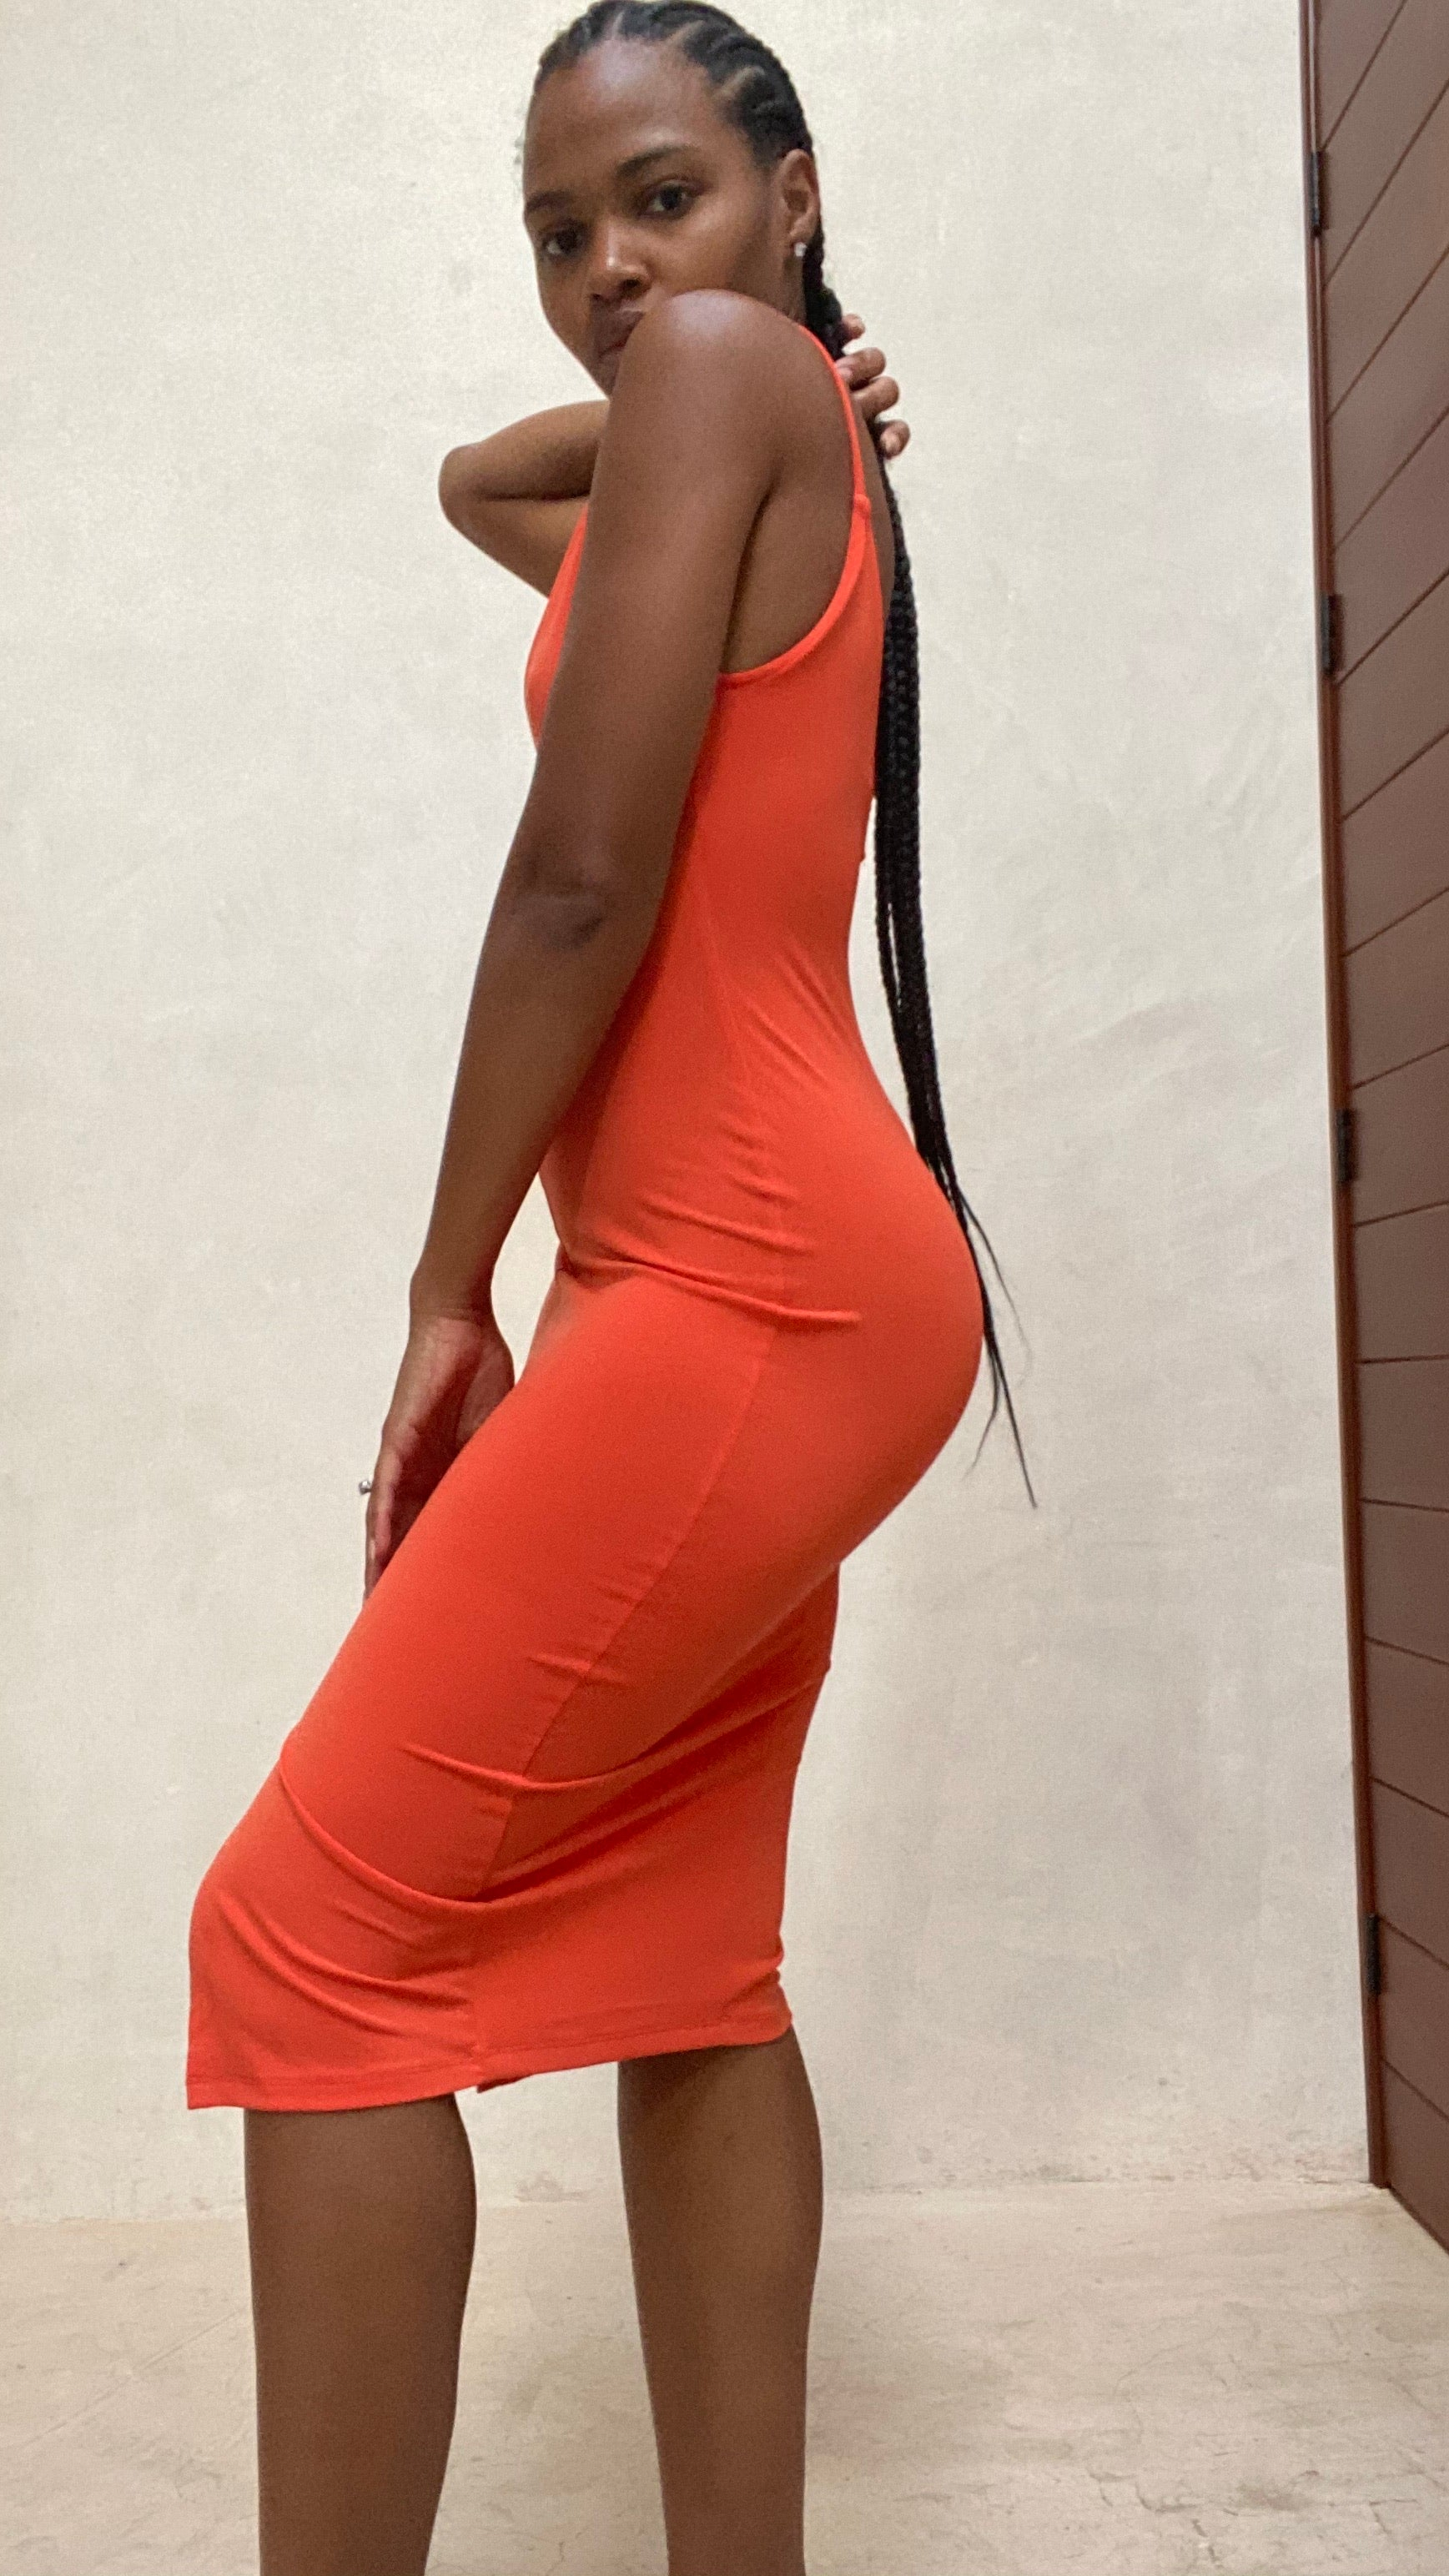 Kia High Spilt Dress (Orange)